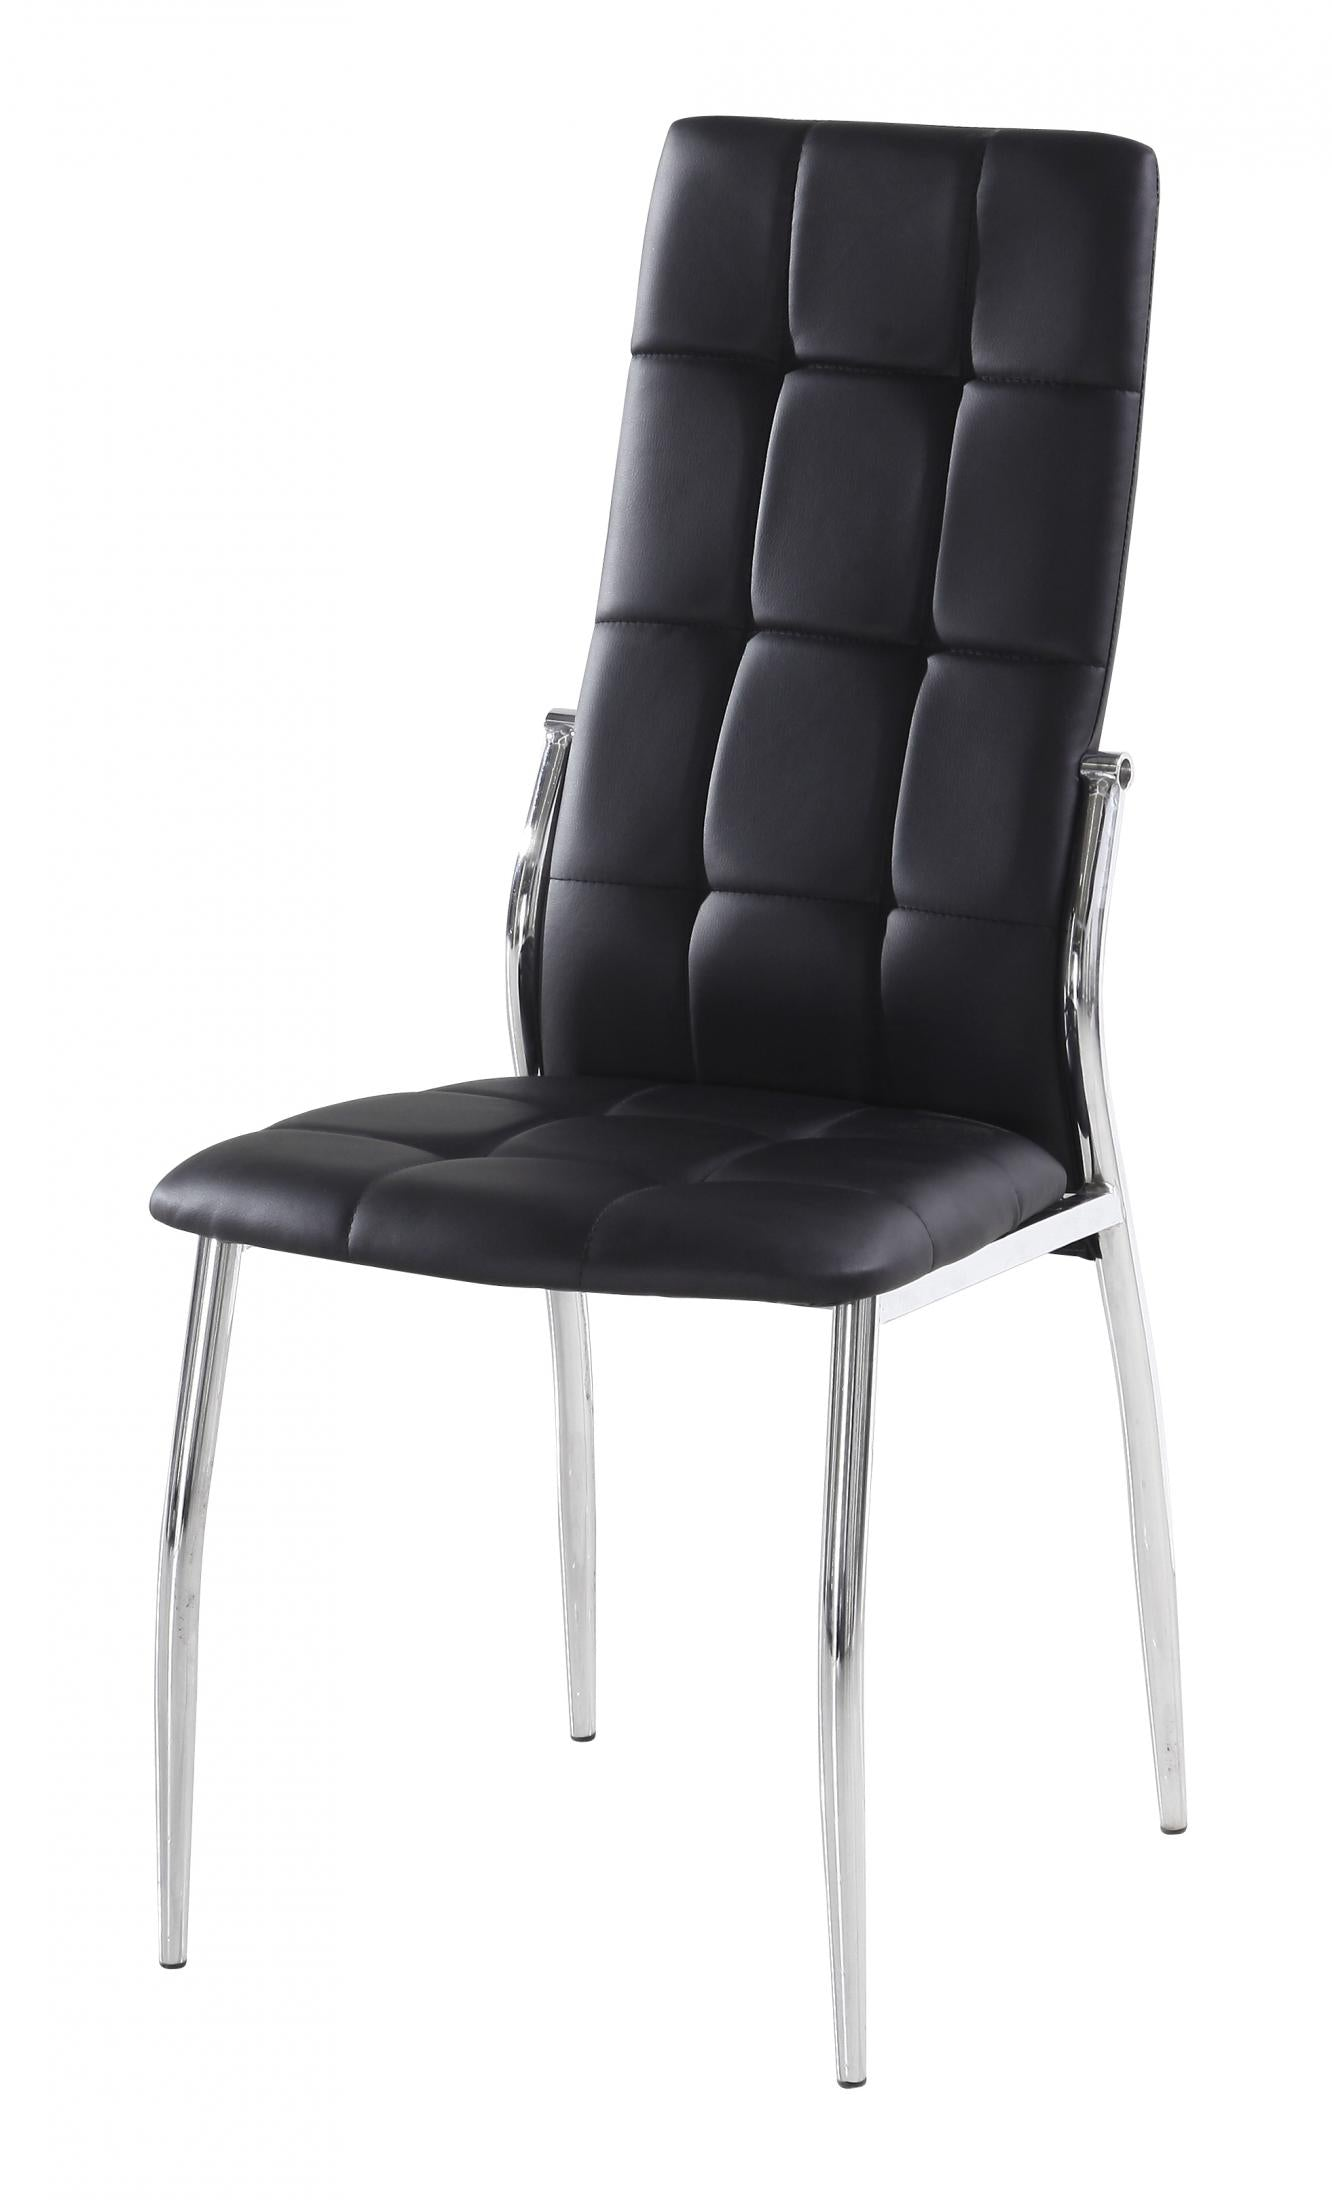 Georgia PU Chairs Chrome & Black (2s)